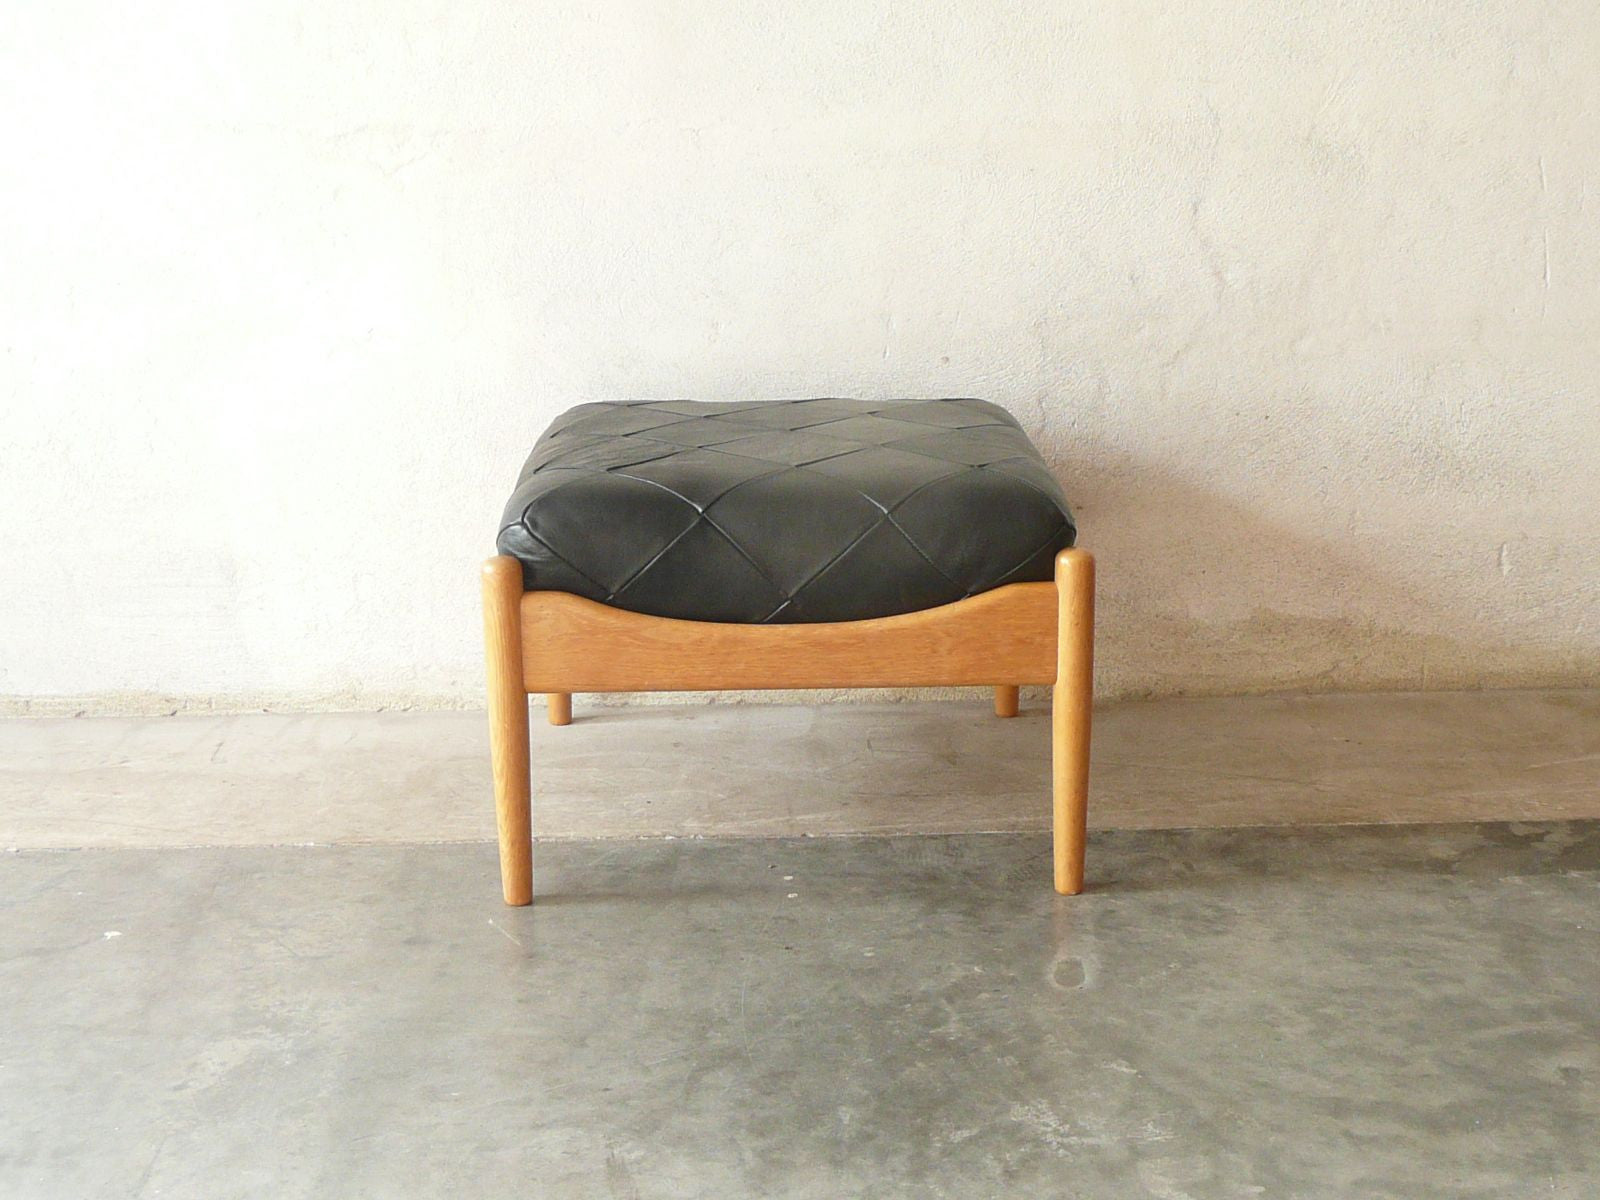 New price: Oak and leather footstool